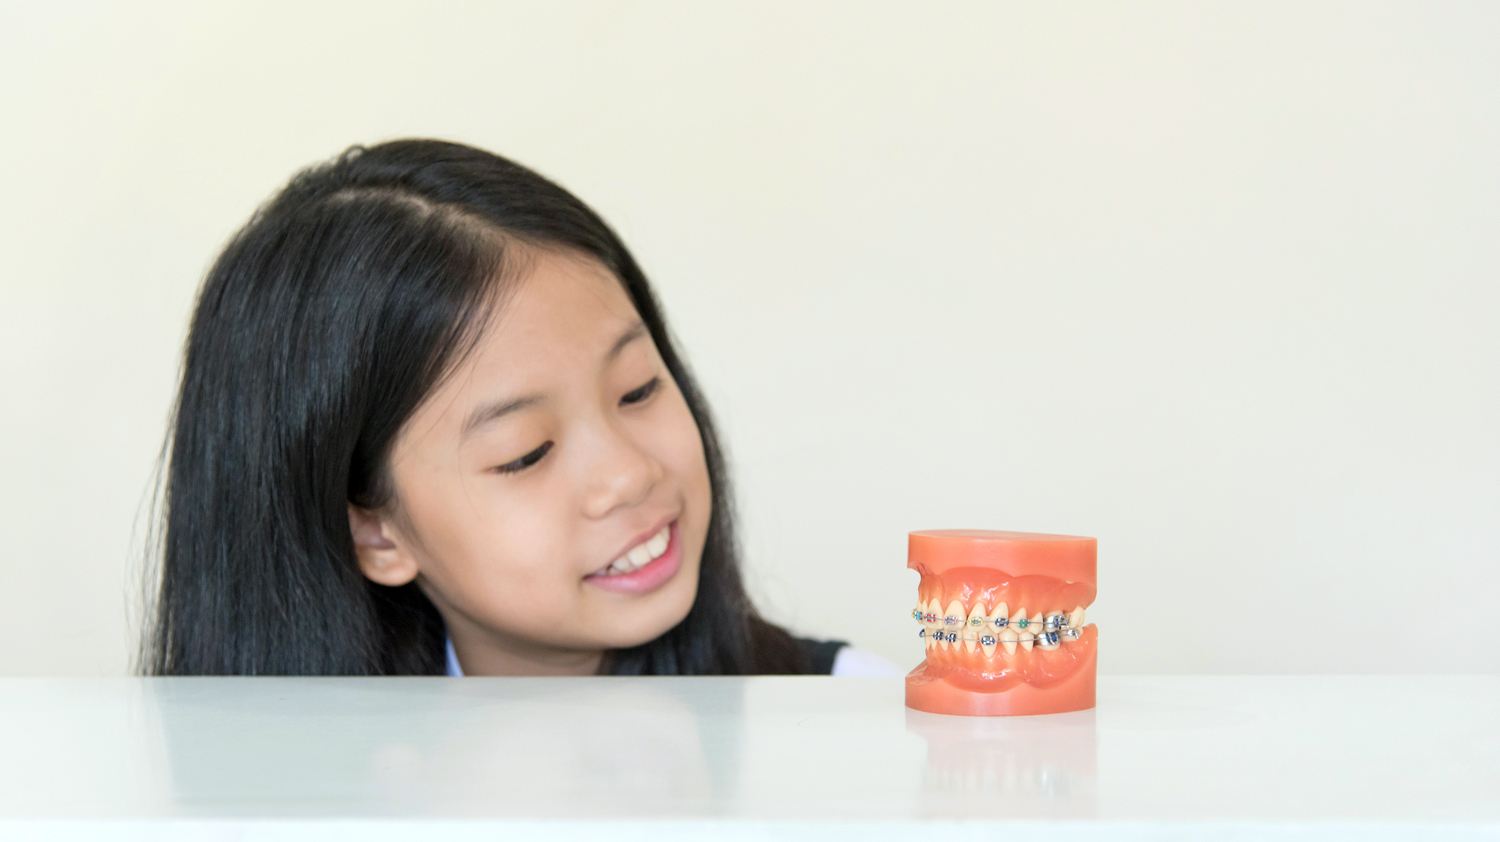 In The News – Children Are Being Screened for Orthodontics Later Than Recommended